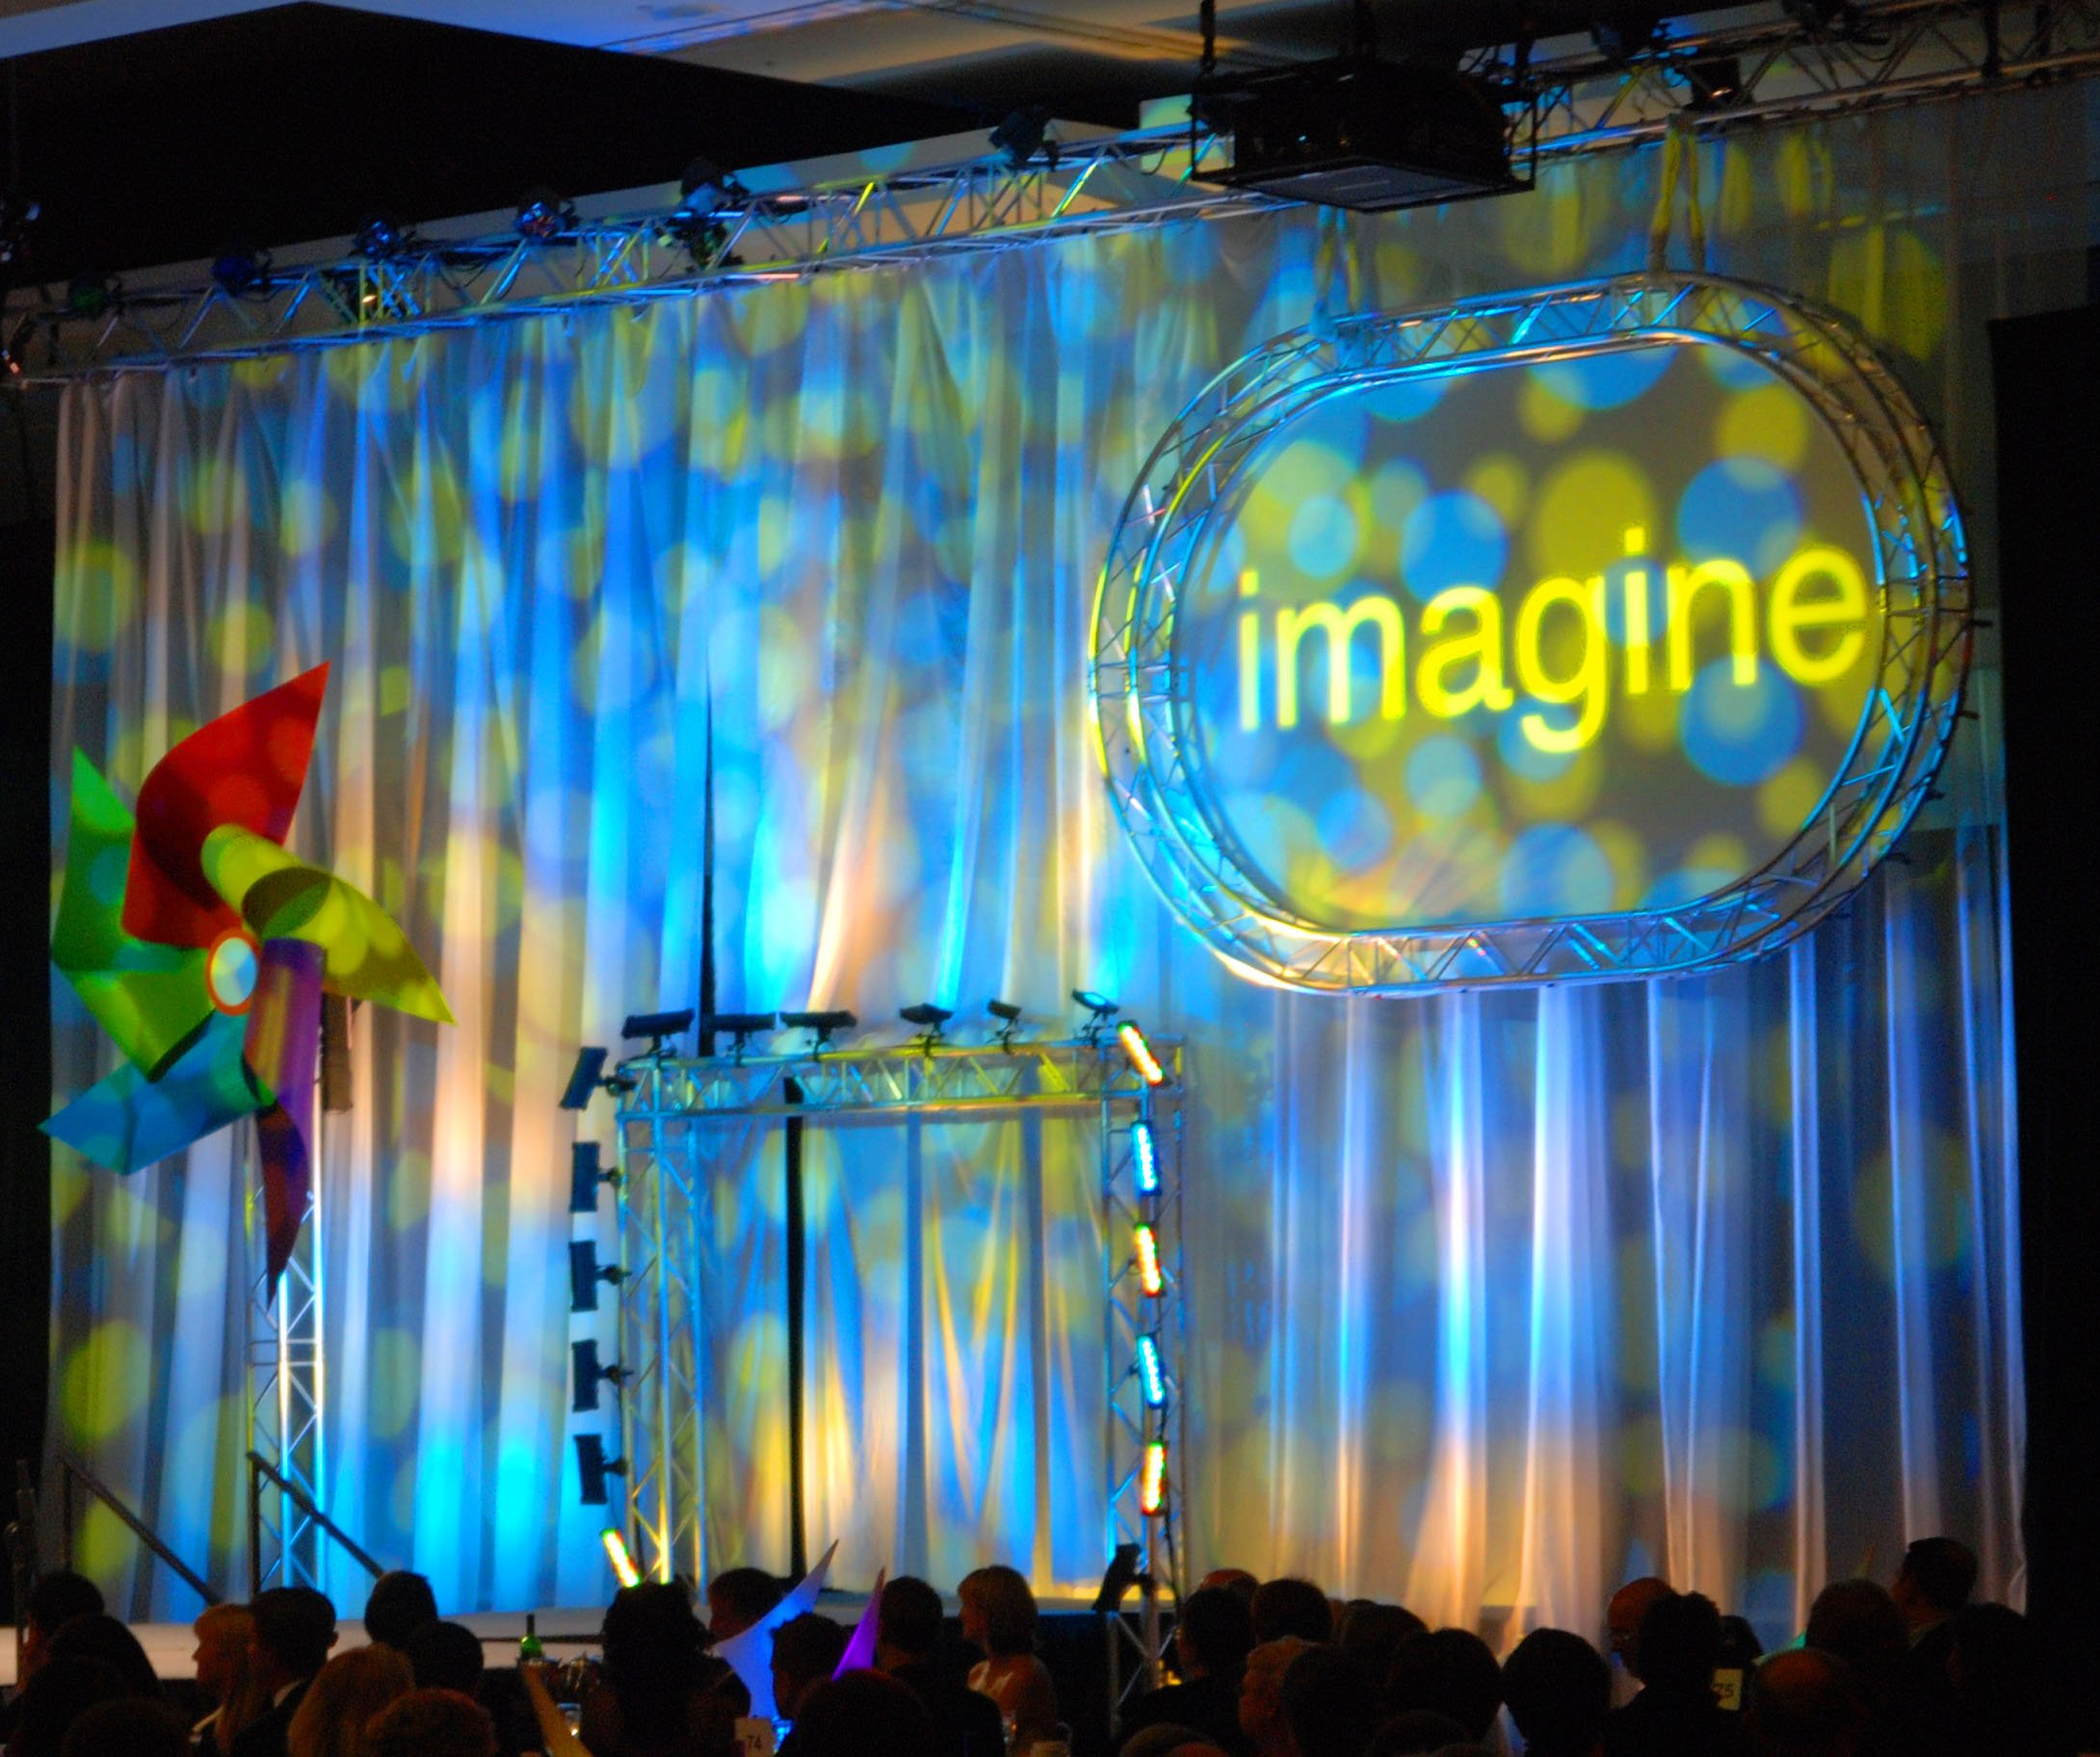 Convention Center Staged for Corporate Banquet and Concert